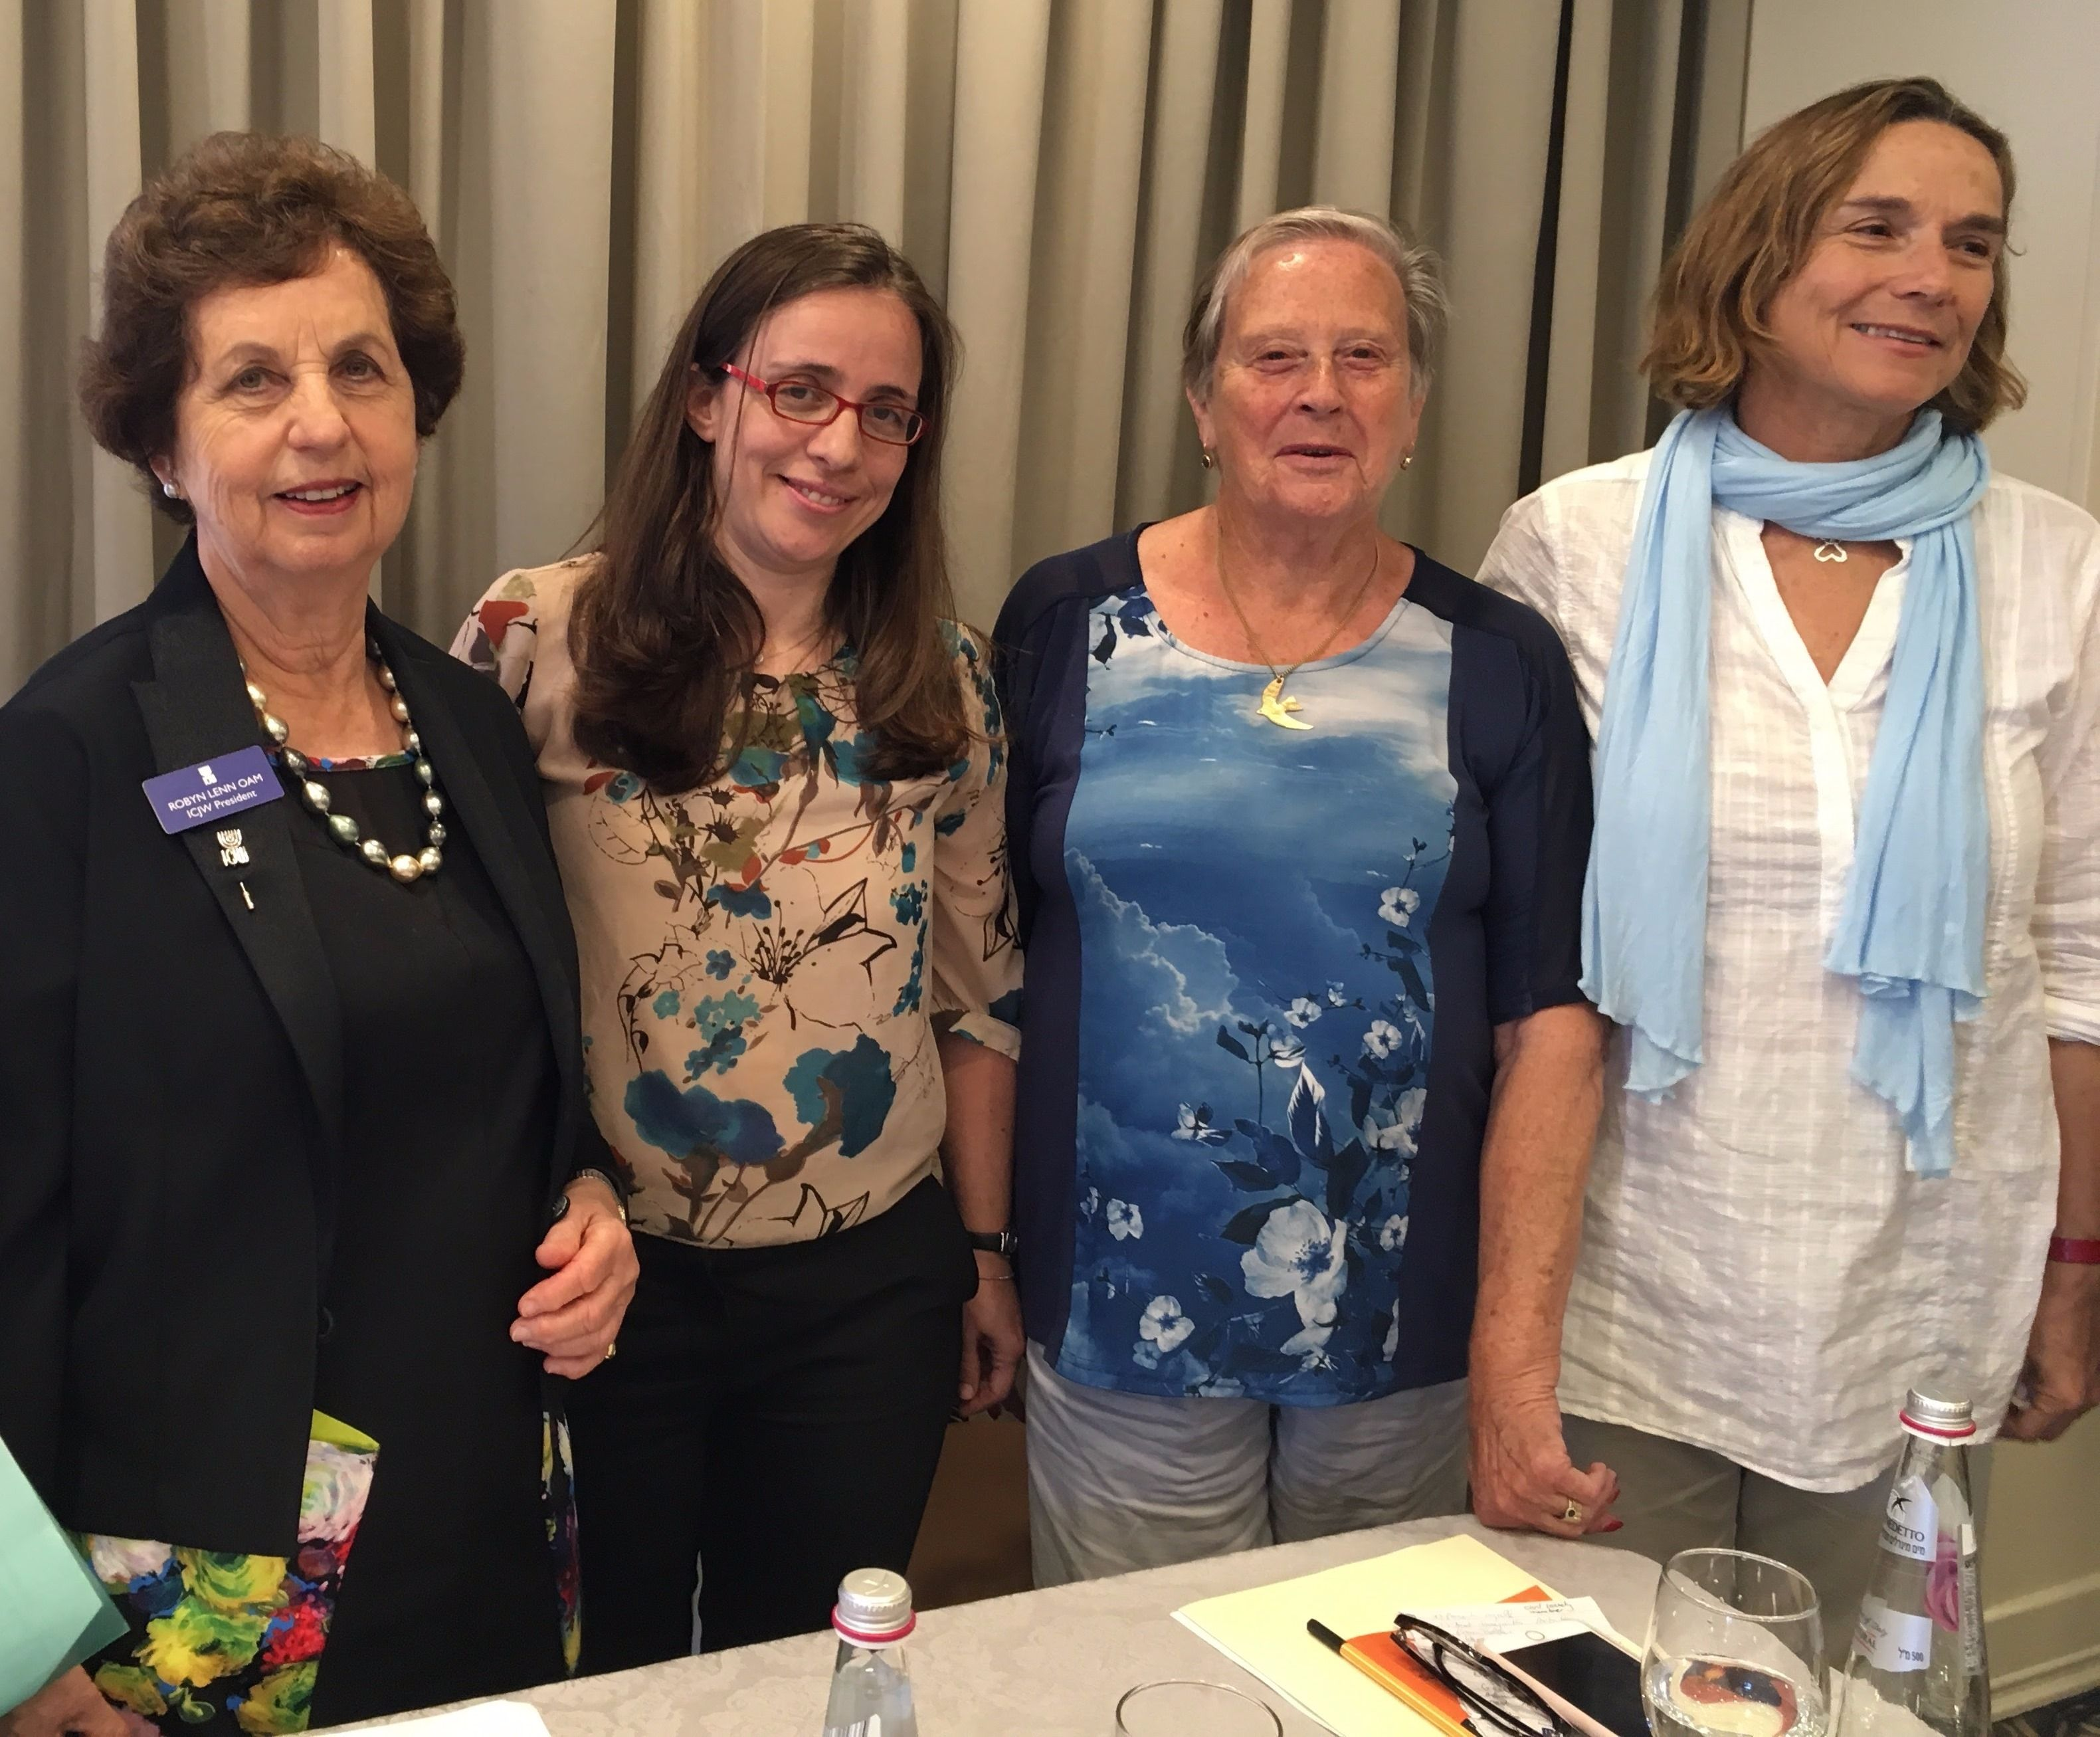 ICJW President Robyn Lenn, Anat Thon-Ashkenazy (Itach-Maaki), Roni Keidar (Other Voice) and Angela Yantian (Women Wage Peace)